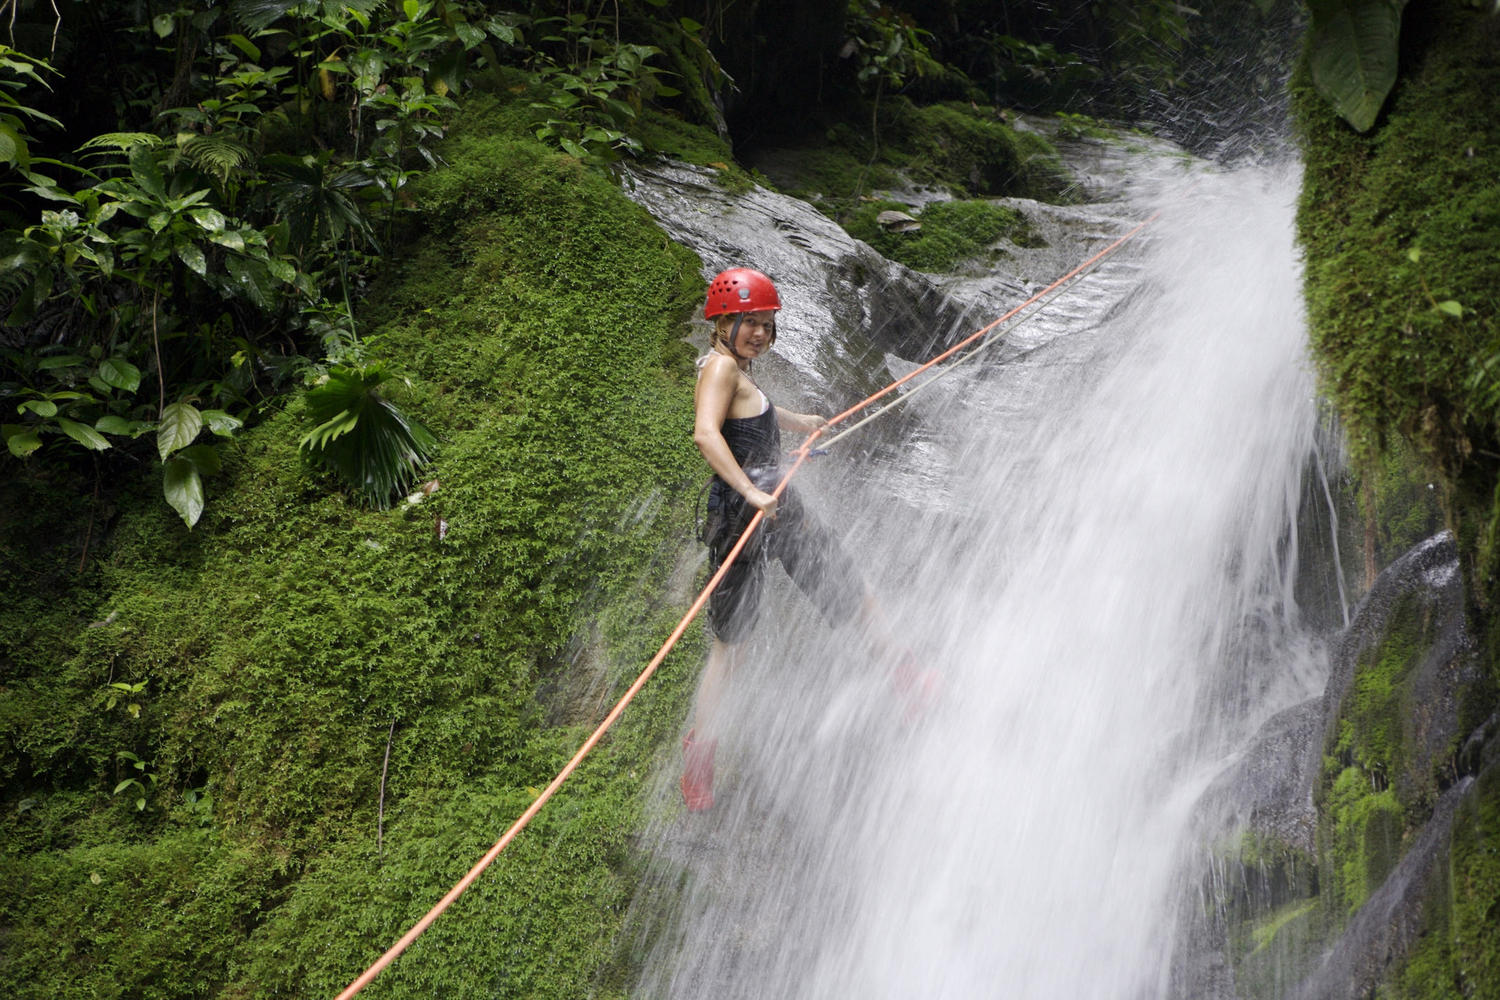 Rappelling jungle waterfalls at Selva Bananito on Costa Rica's Caribbean side